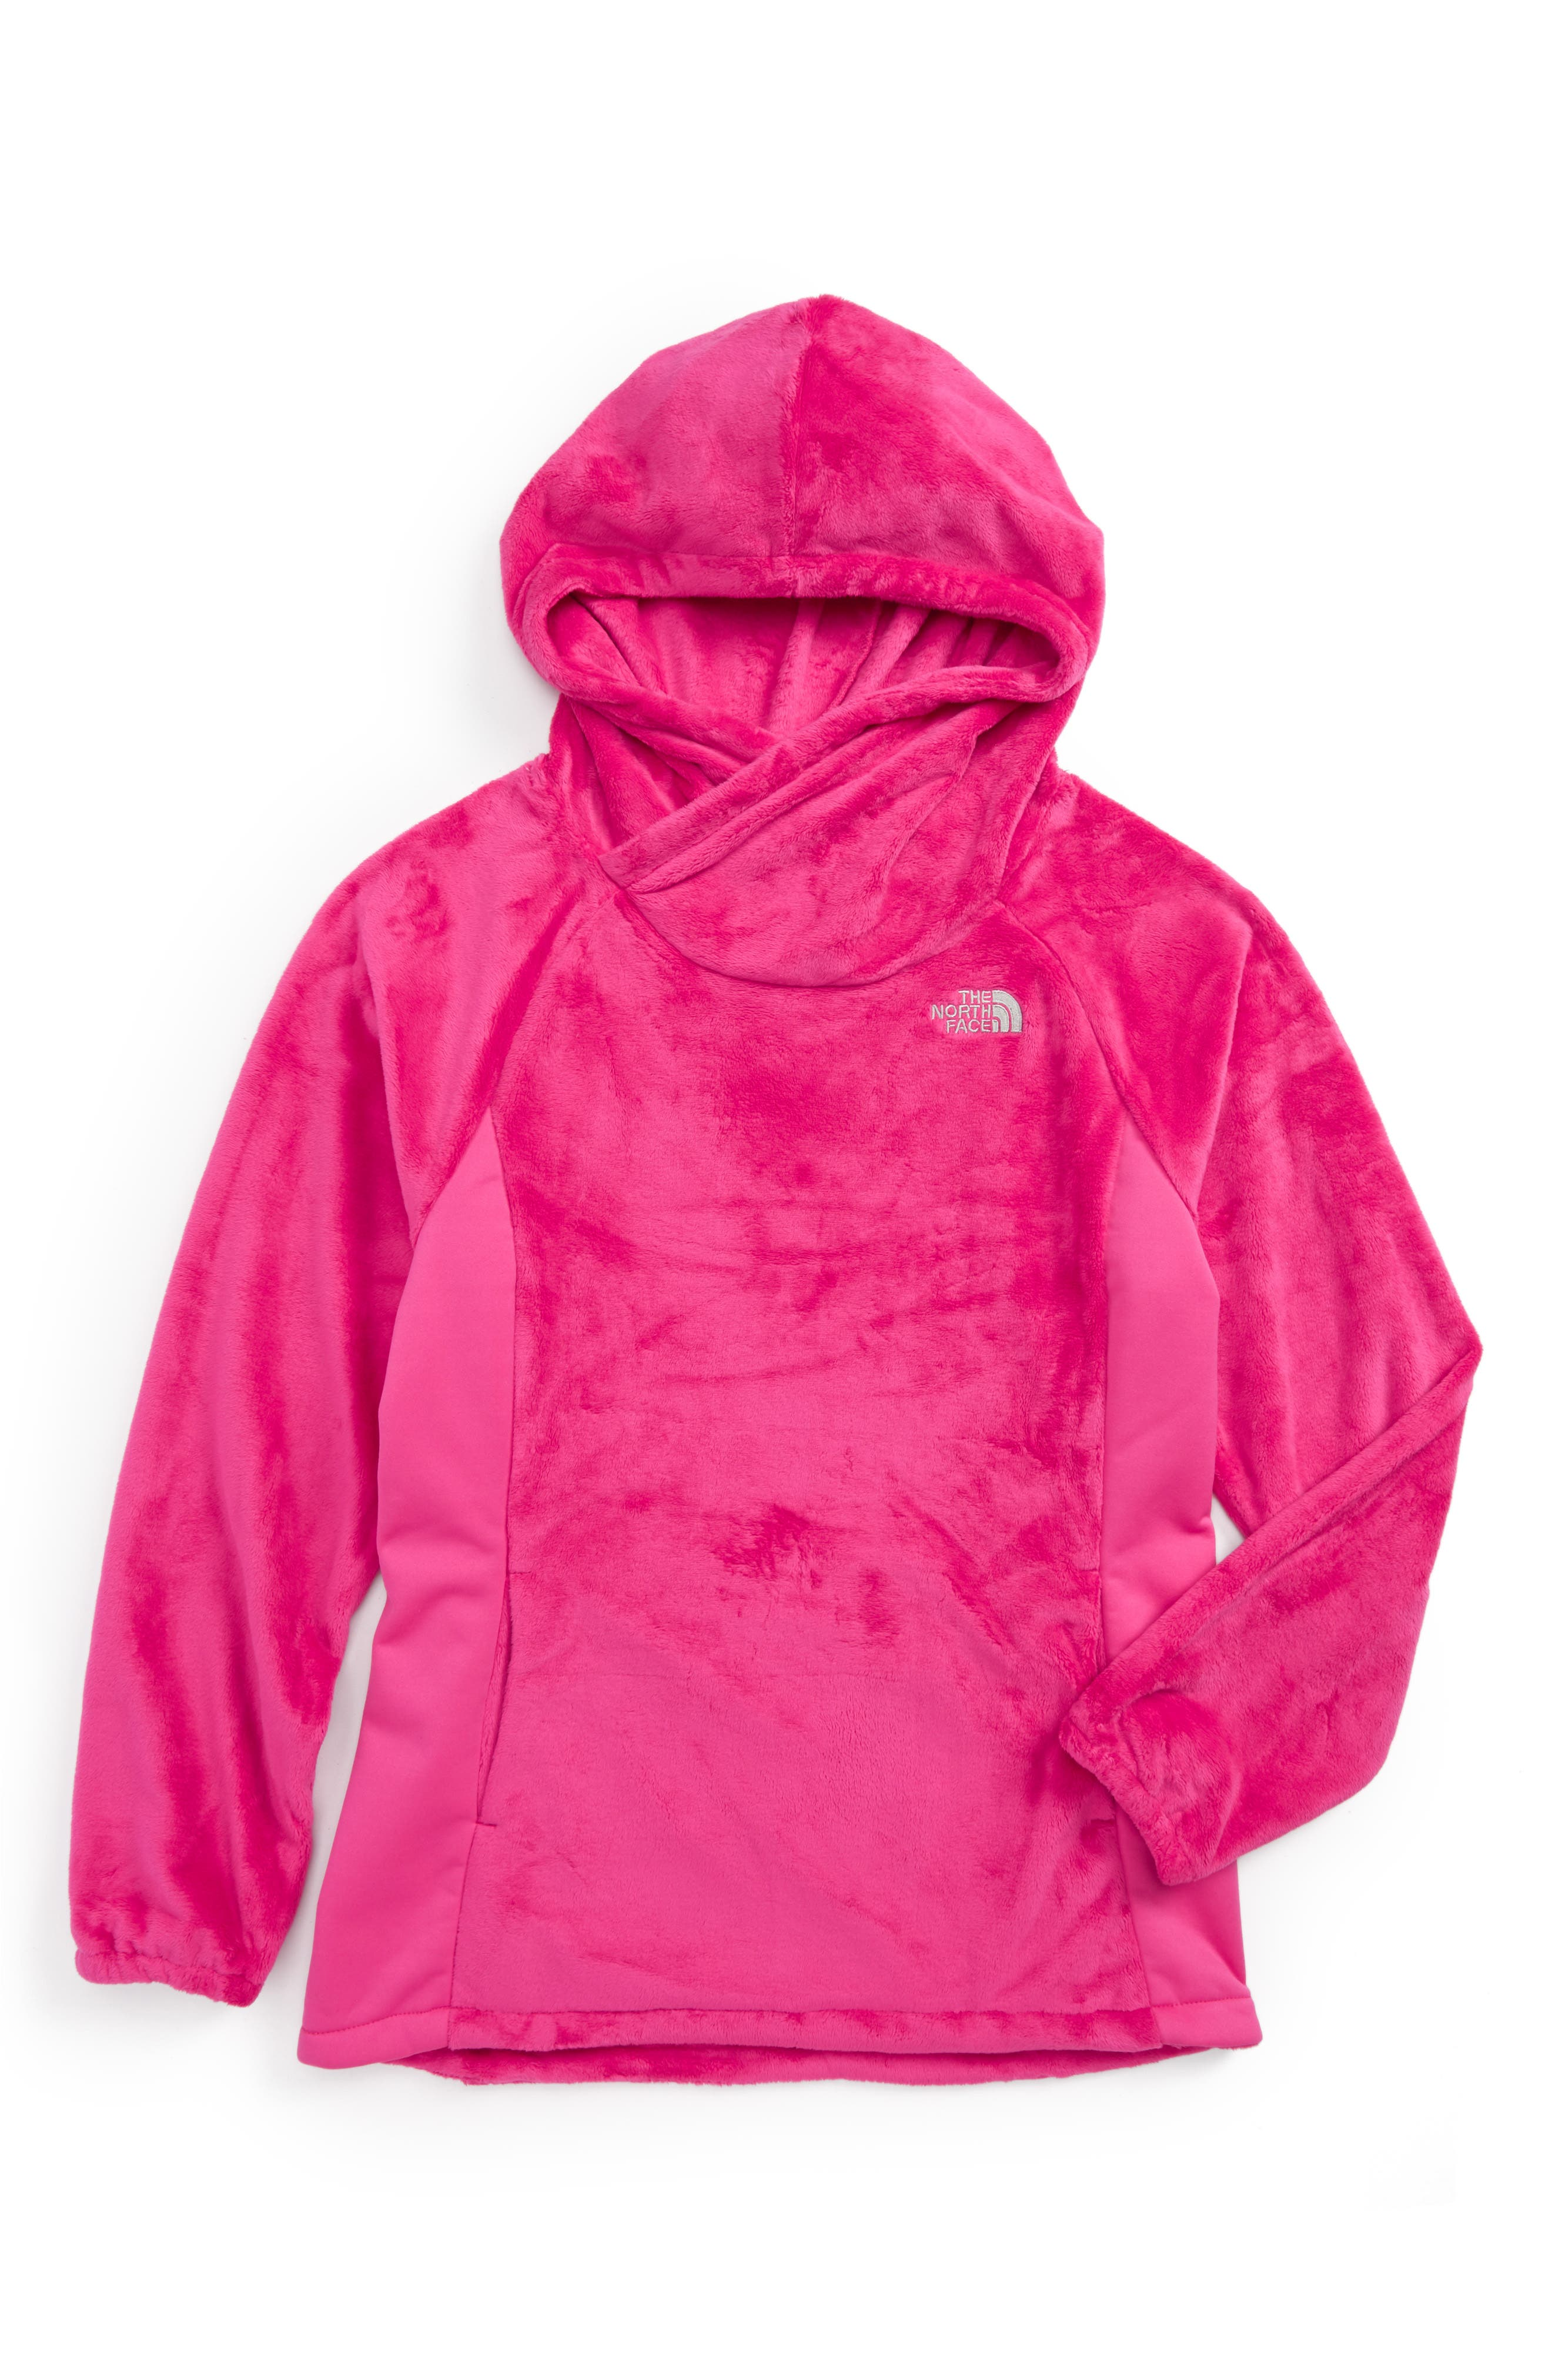 Main Image - The North Face Oso Fleece Pullover (Little Girls & Big Girls)